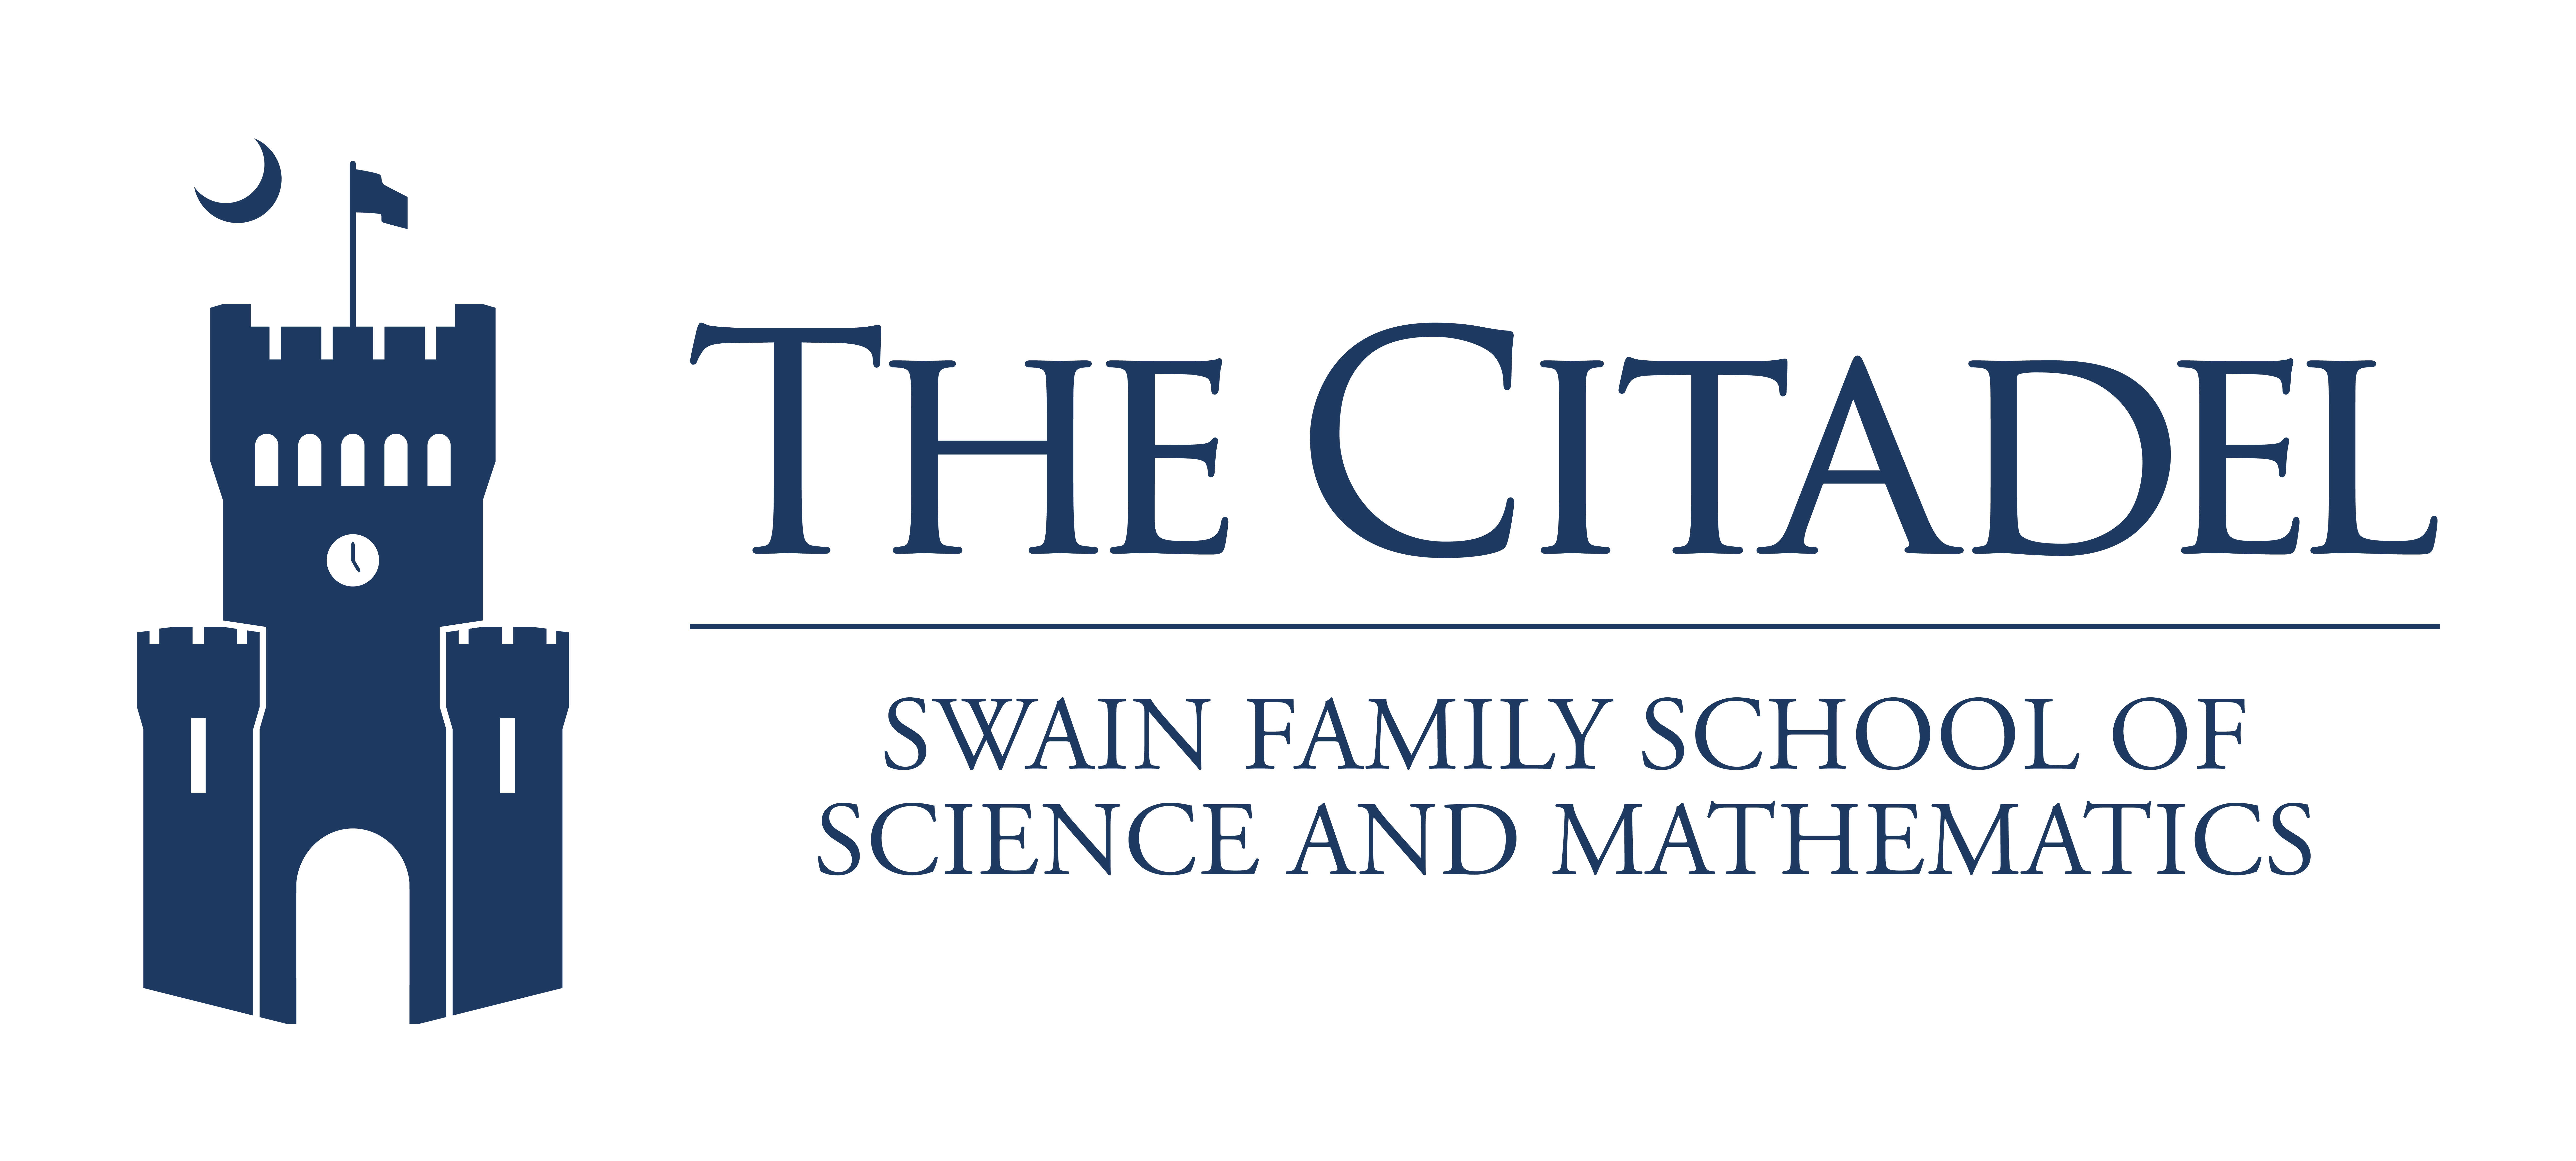 Citadel Swain Family School of Science and Mathematics Logo